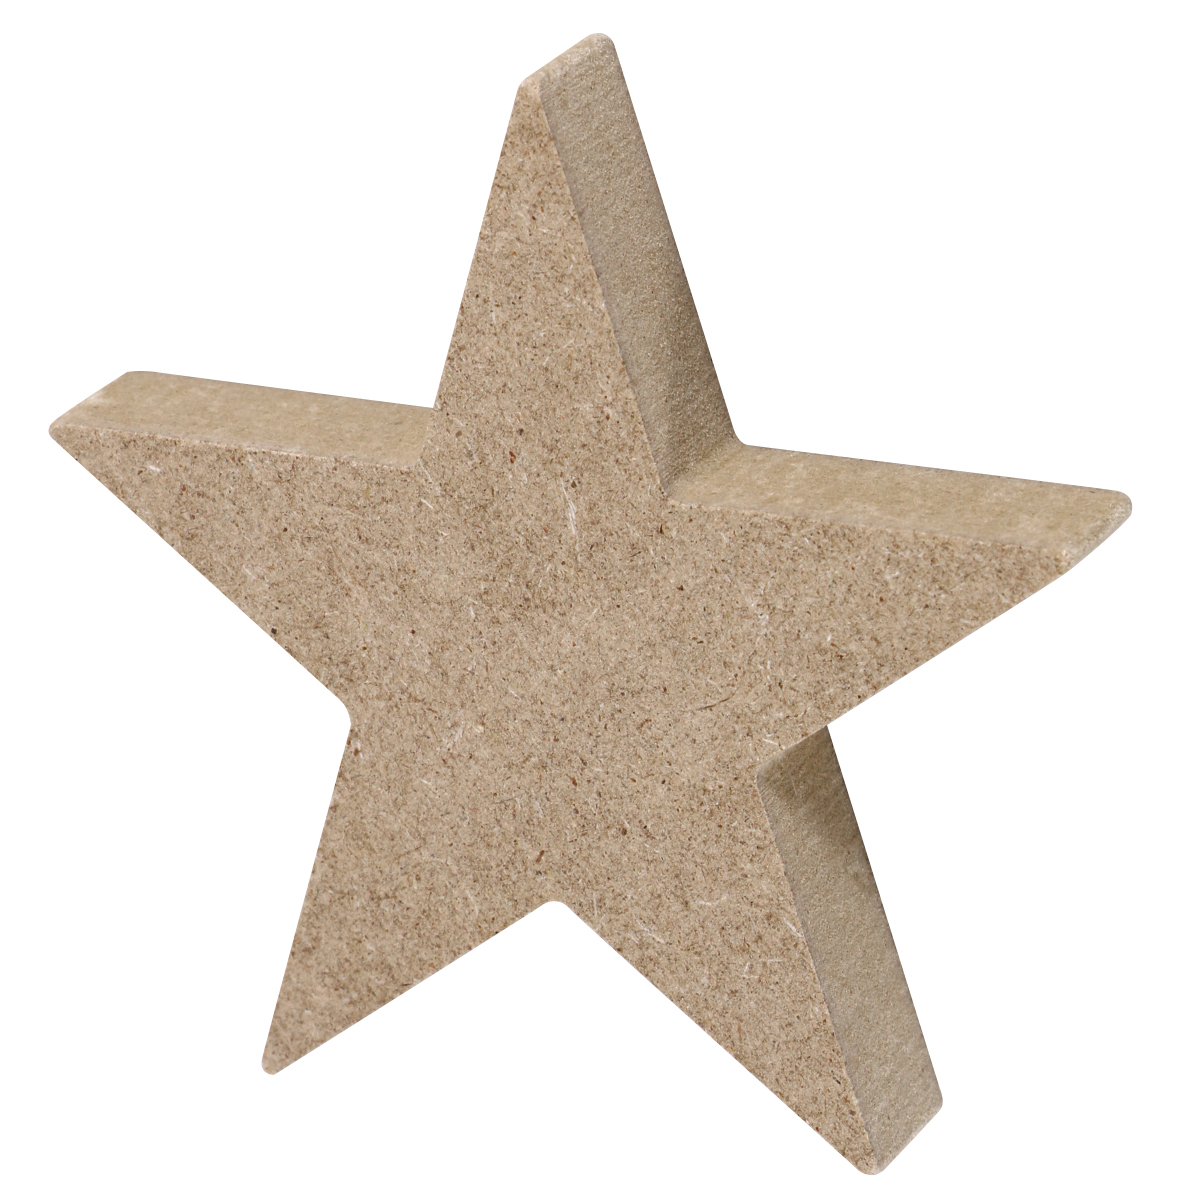 Home Decoration Hanging Ornament Accessory Painting Scrapbooking Craft Wooden DIY Star Shape Handmade Craft Decoration